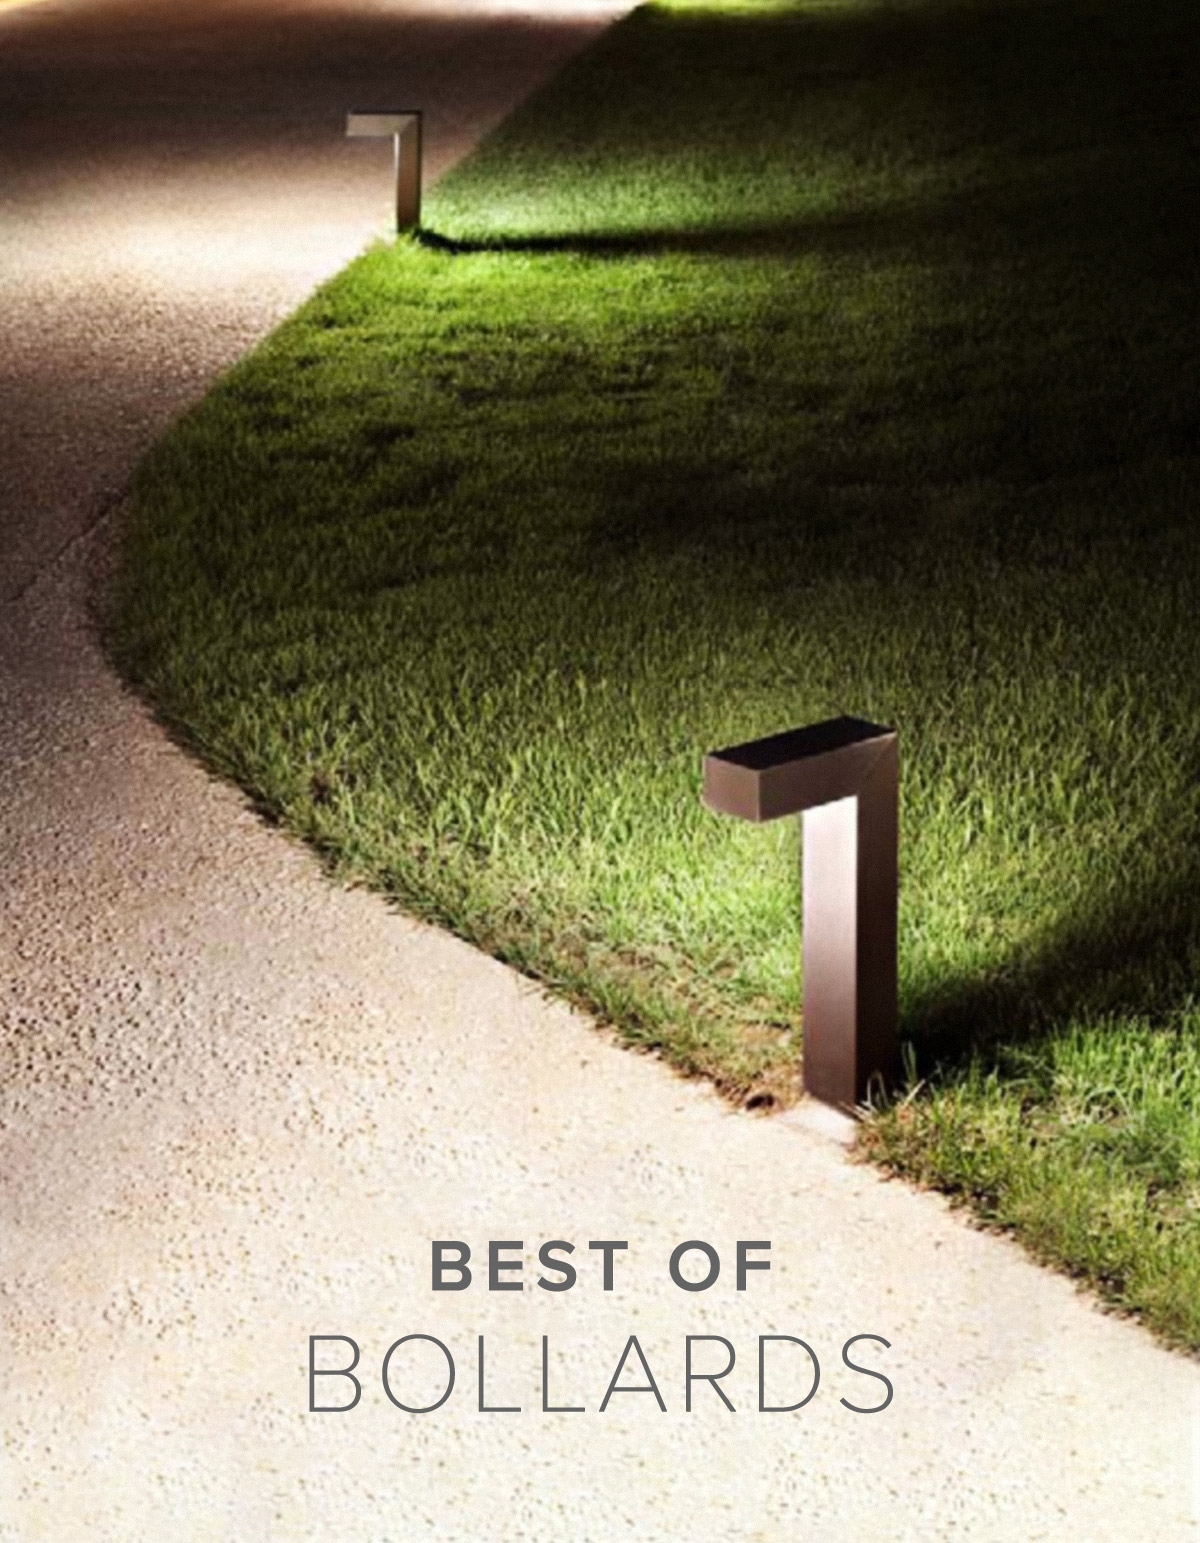 Best of Bollards